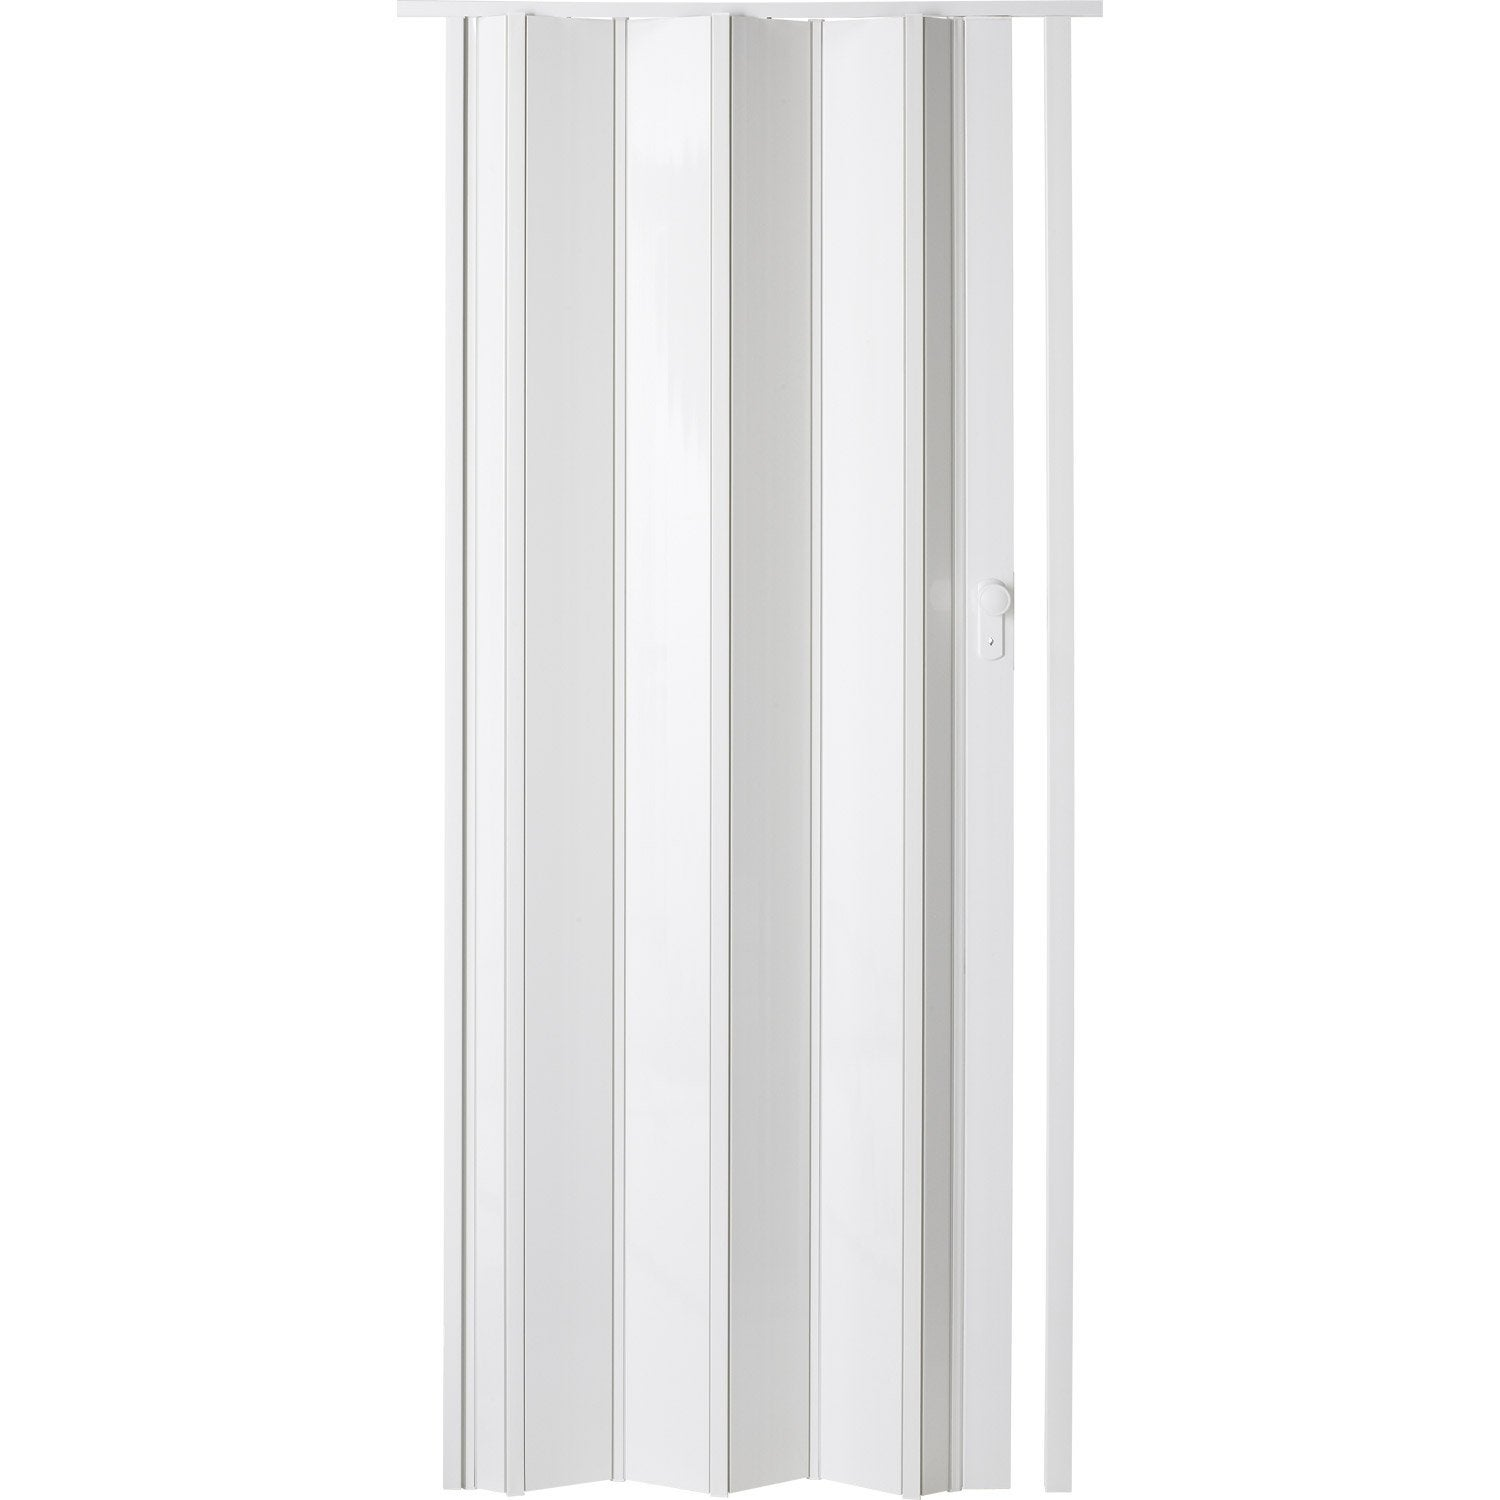 Porte extensible ibiza blanc brillant 205 x 85 cm pais for Porte coulissante courbe